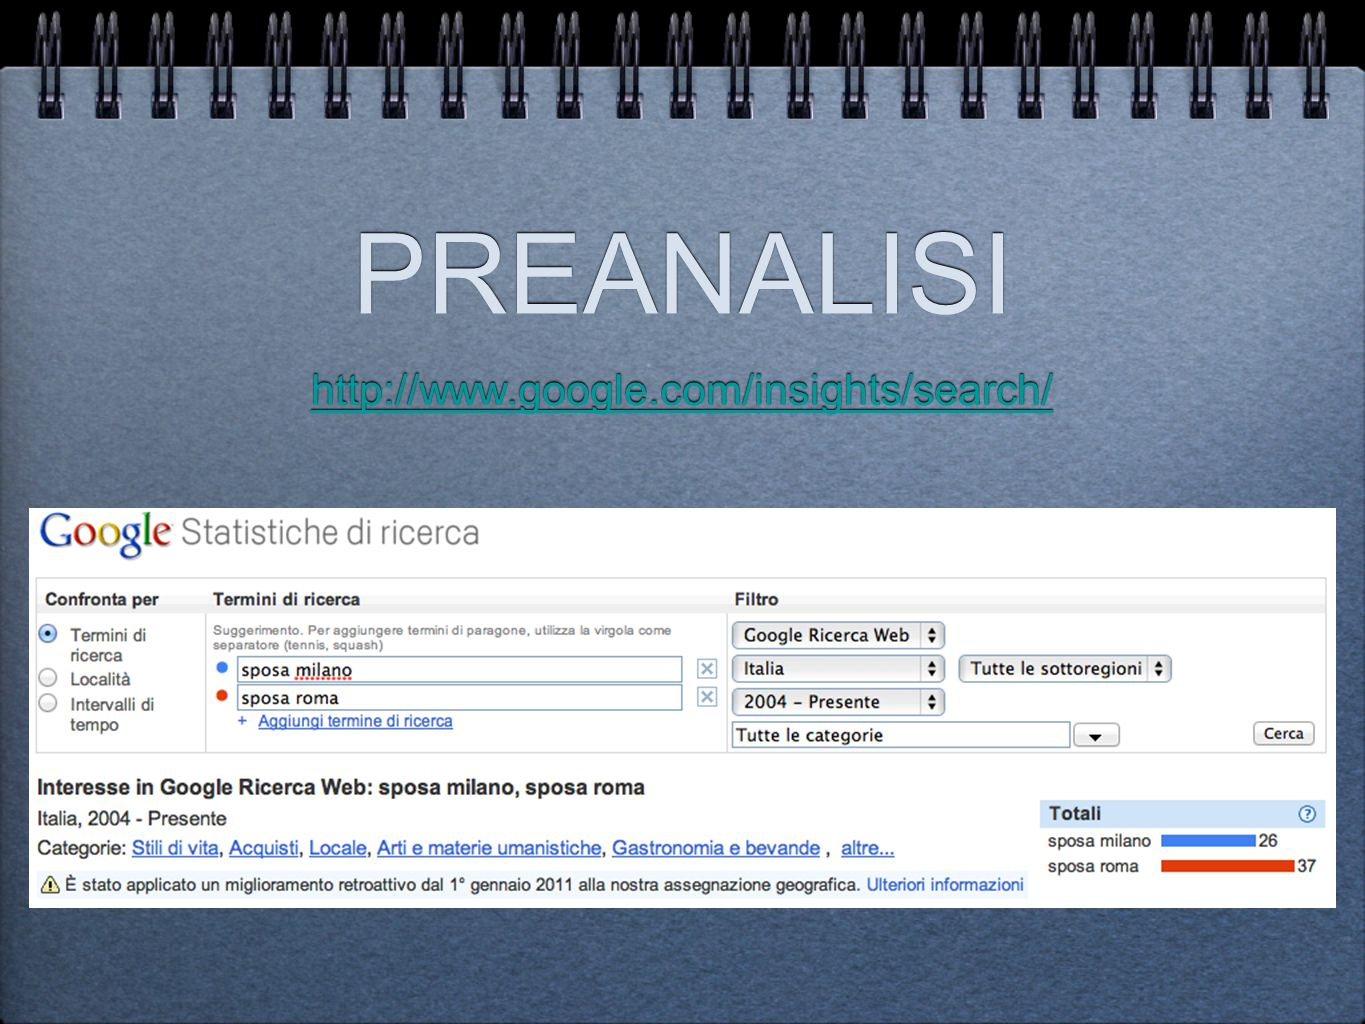 PREANALISI INSIGHTS - ADWORDS - LANDING PAGE